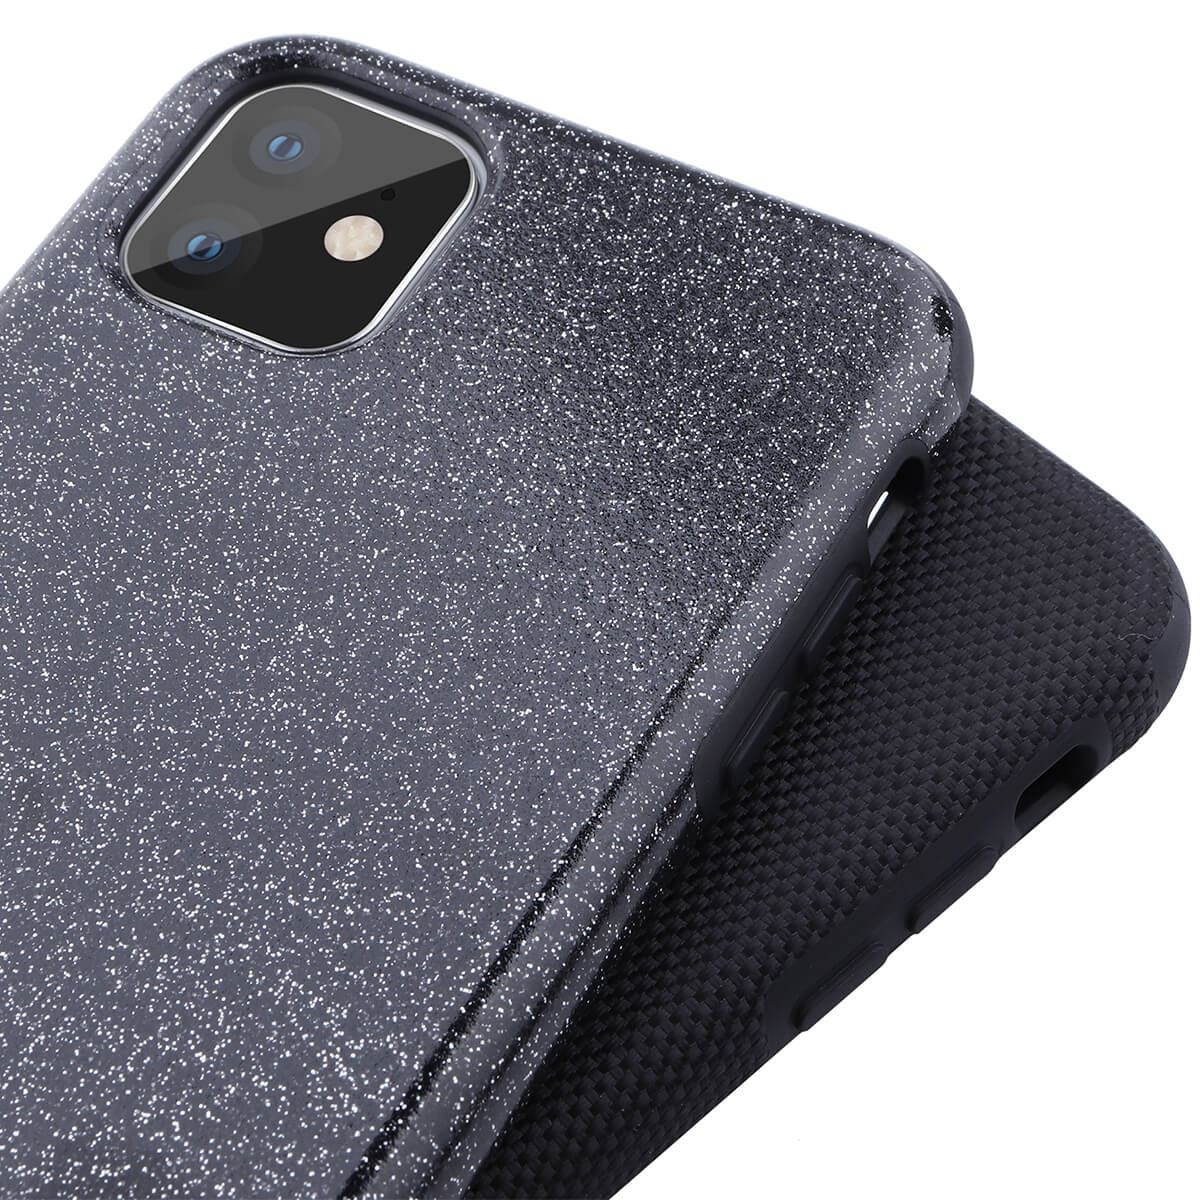 Silicone-Case-For-Apple-iPhone-11-Pro-Max-Bling-Glitter-Diamond-Sparkle-Cover thumbnail 9